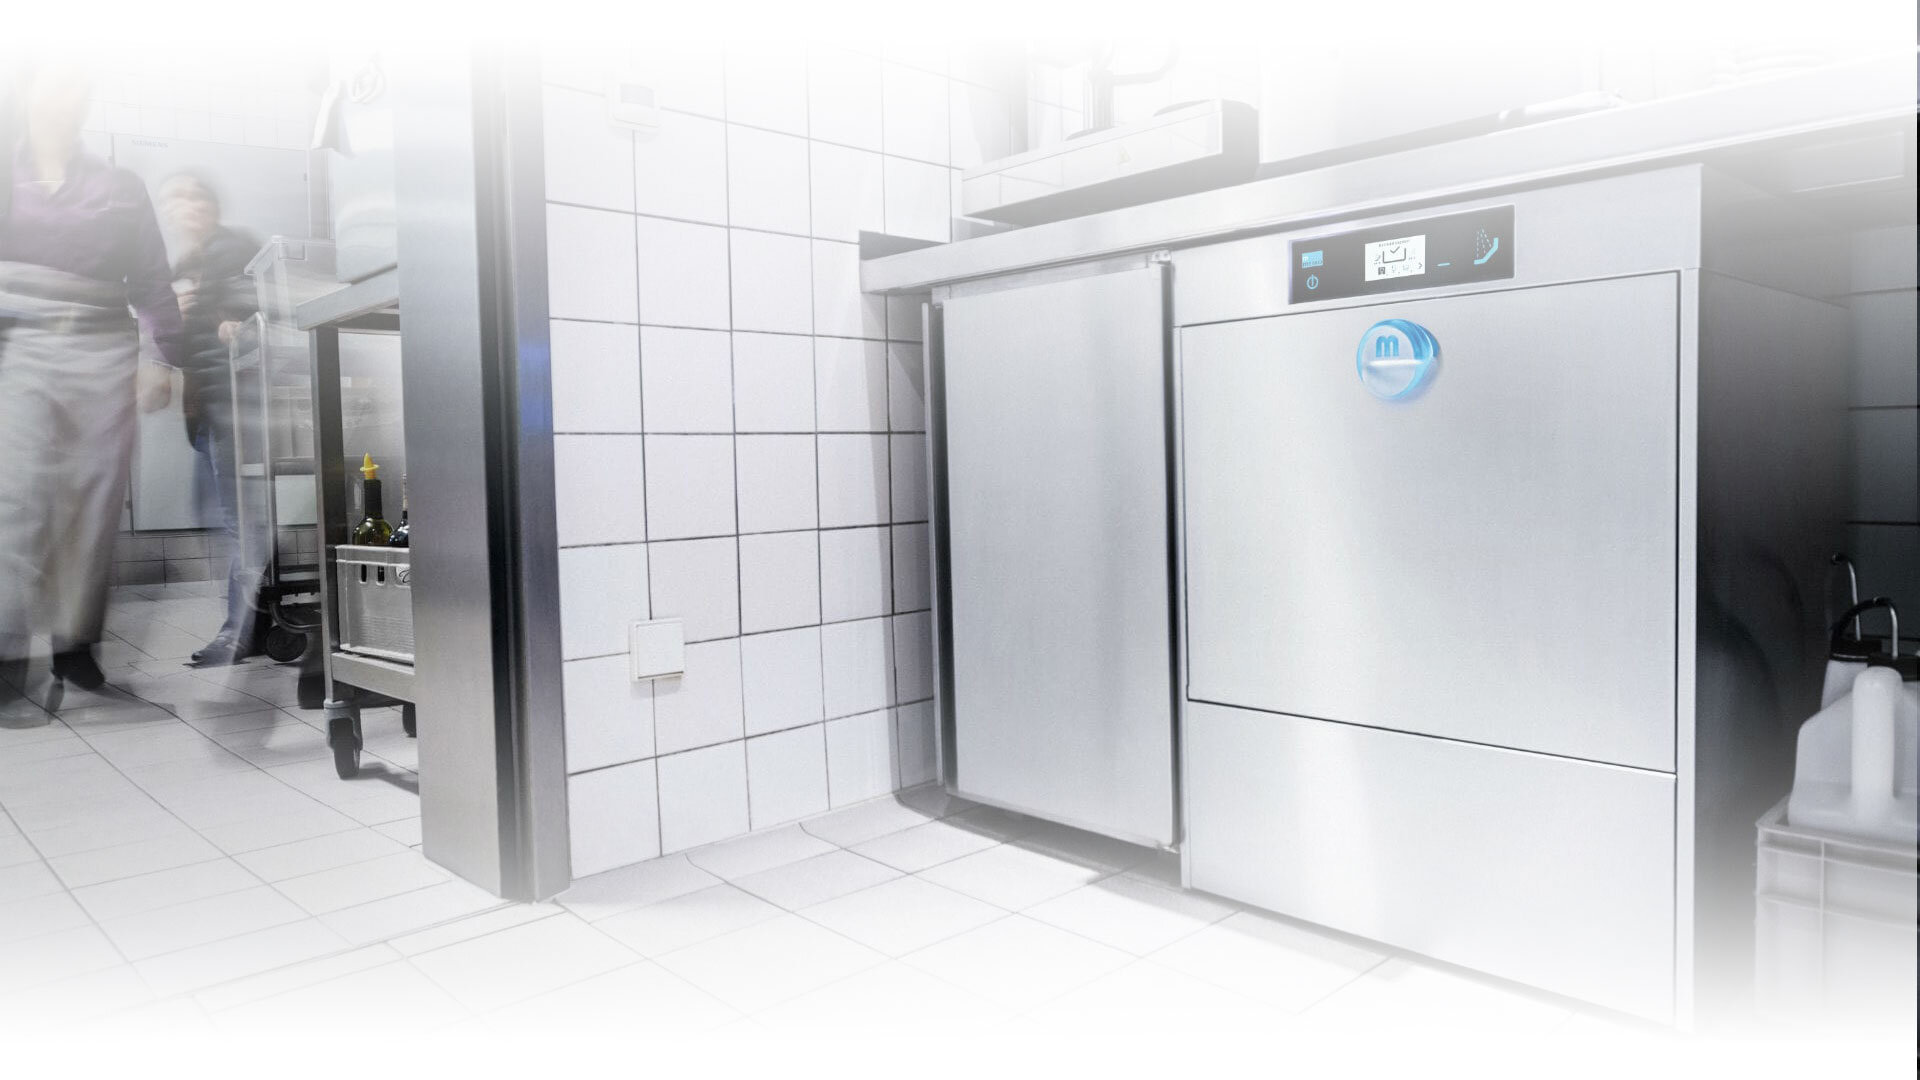 MEIKO M-iClean U  Undercounter dishwashing machines